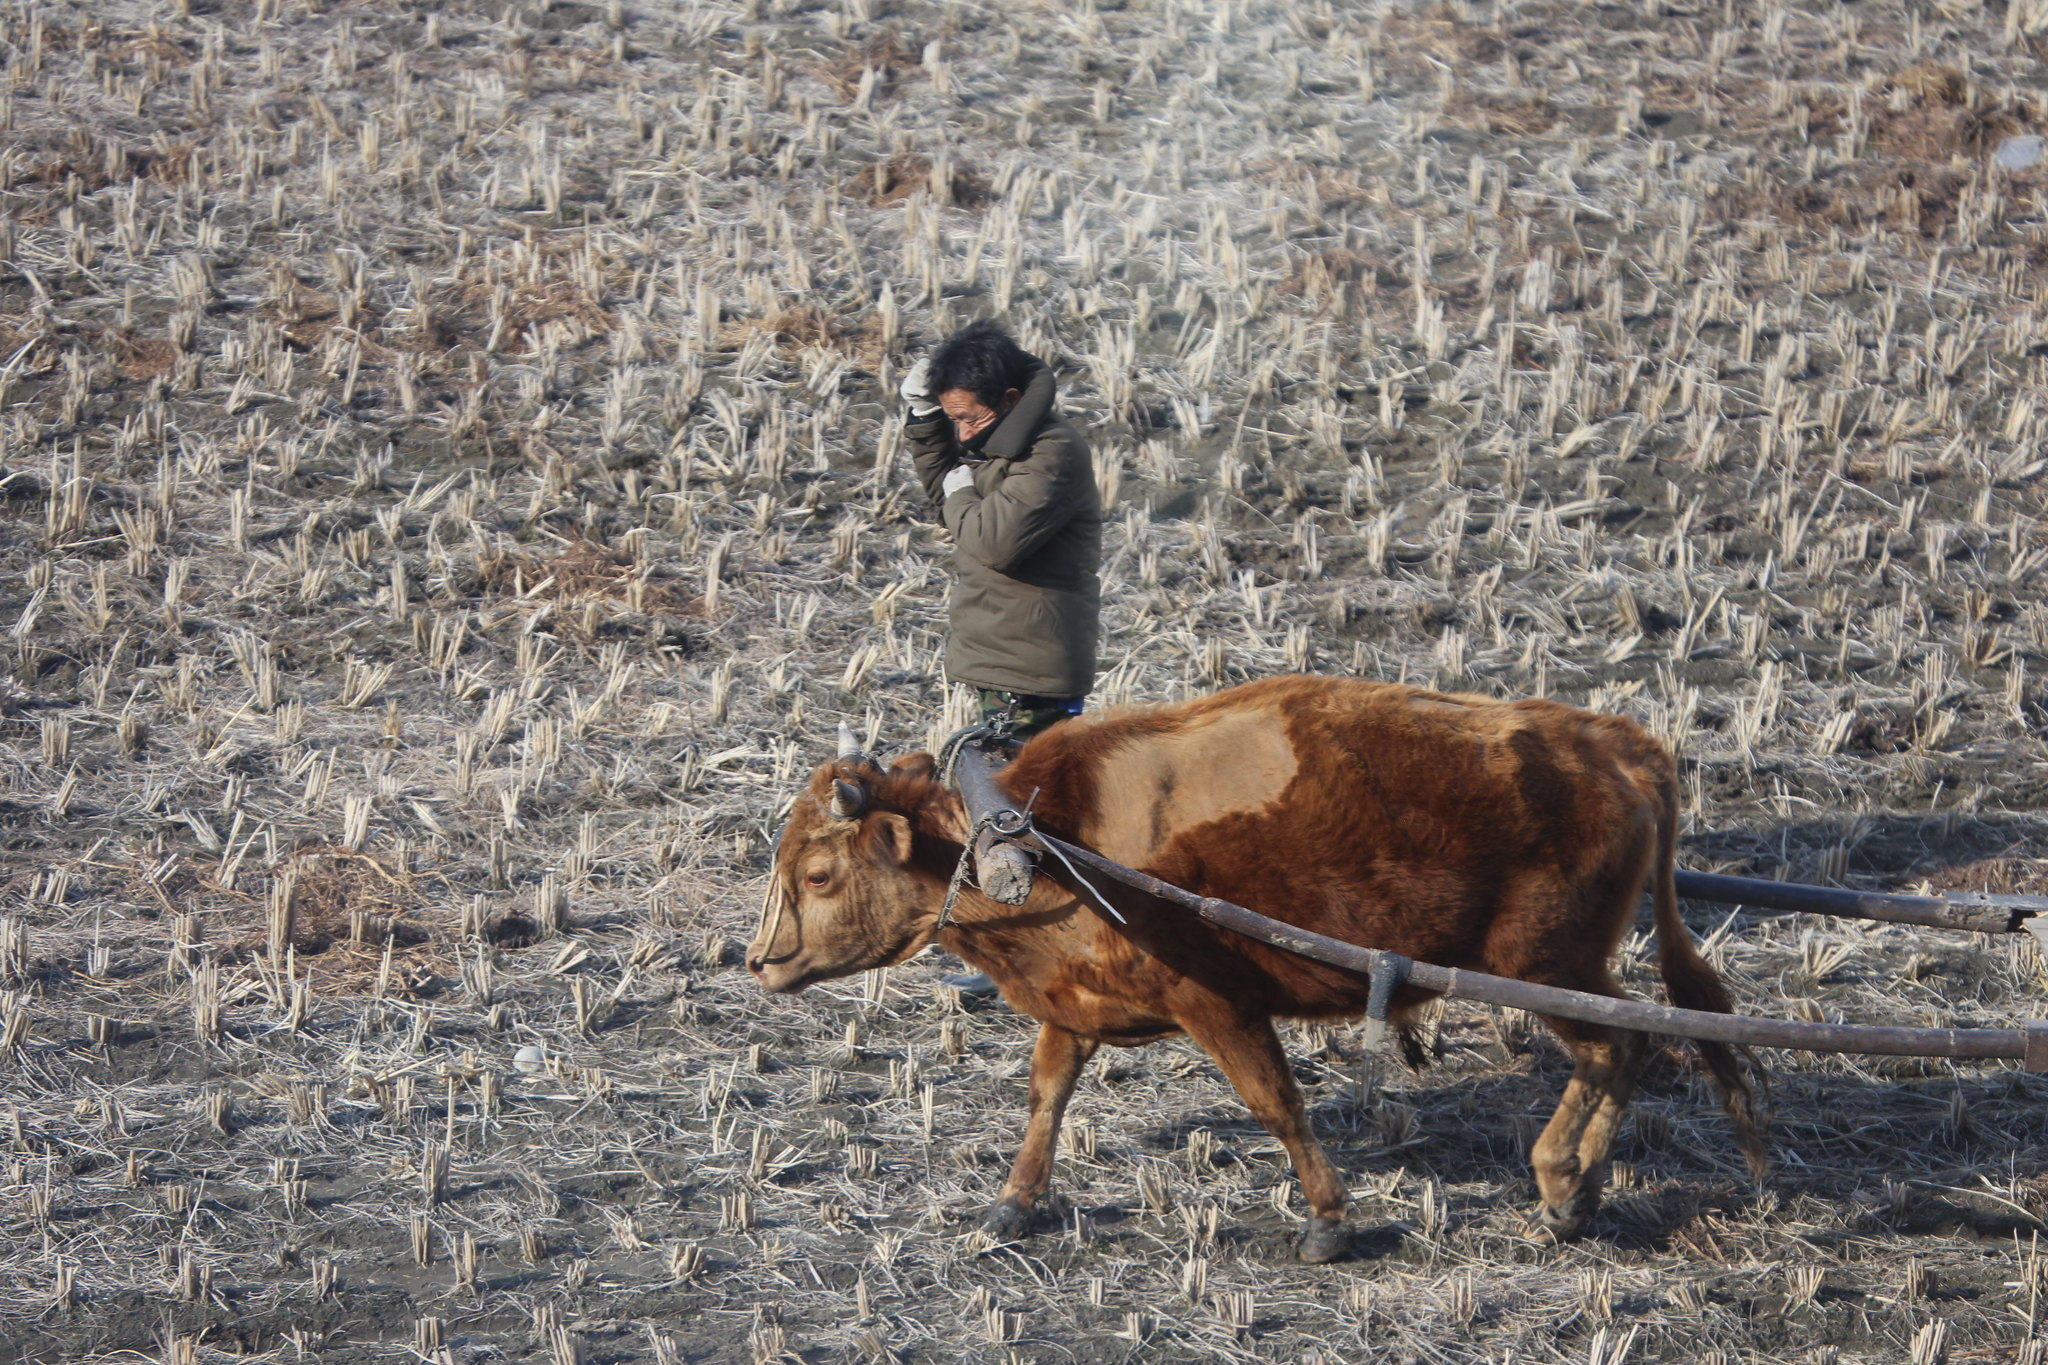 North Korea is giving more power to farmers, but not without helping the elite